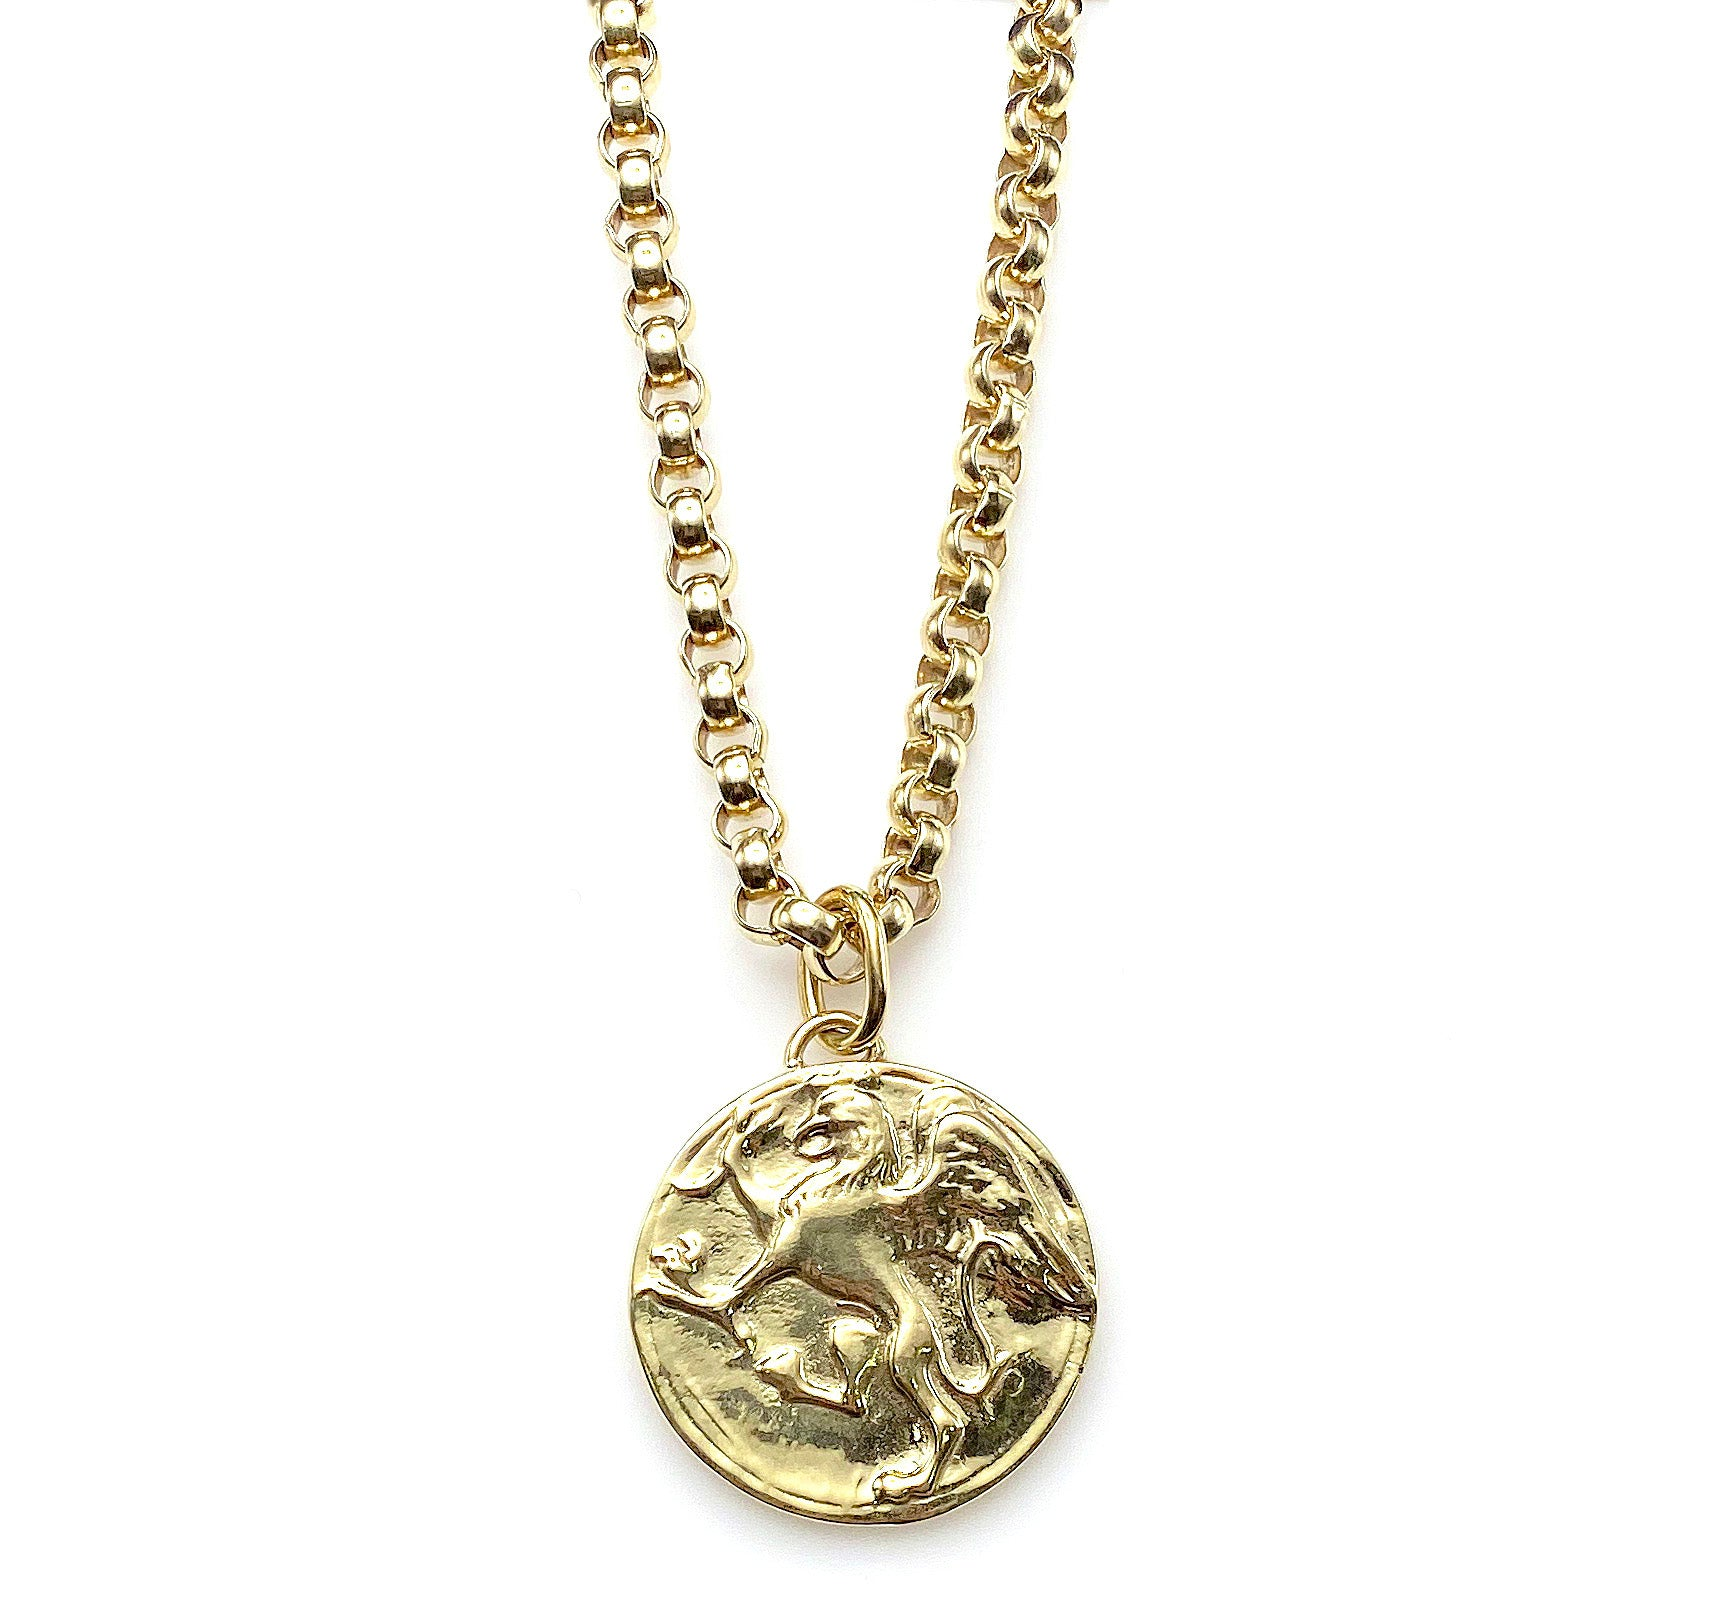 Large Griffin Coin Pendant Necklace, 2 pc set